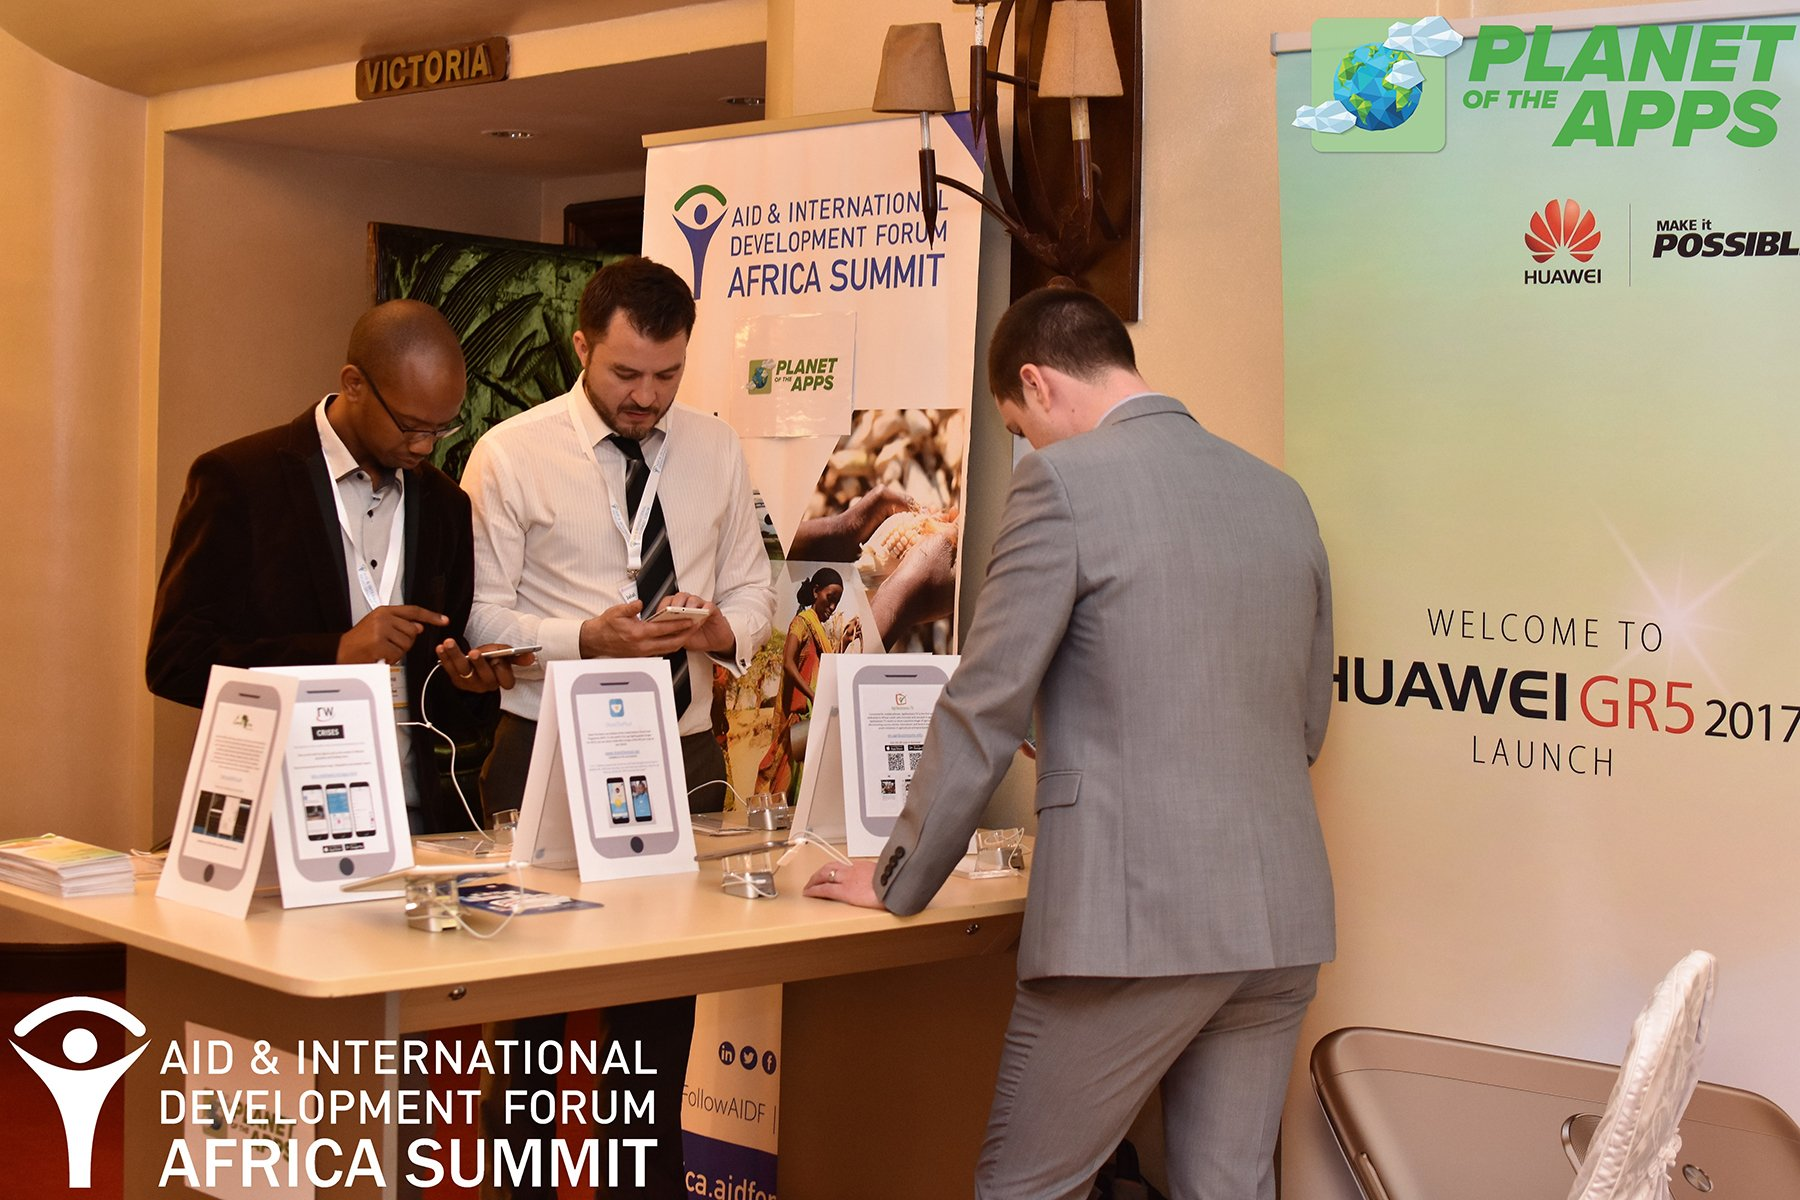 Find out which apps featured at #PlanetOfTheApps at #AIDFAfrica Summit. Thanks @HuaweiMobileKE for providing devices https://t.co/gTCVO8YQIX https://t.co/2p5GXqVRjn